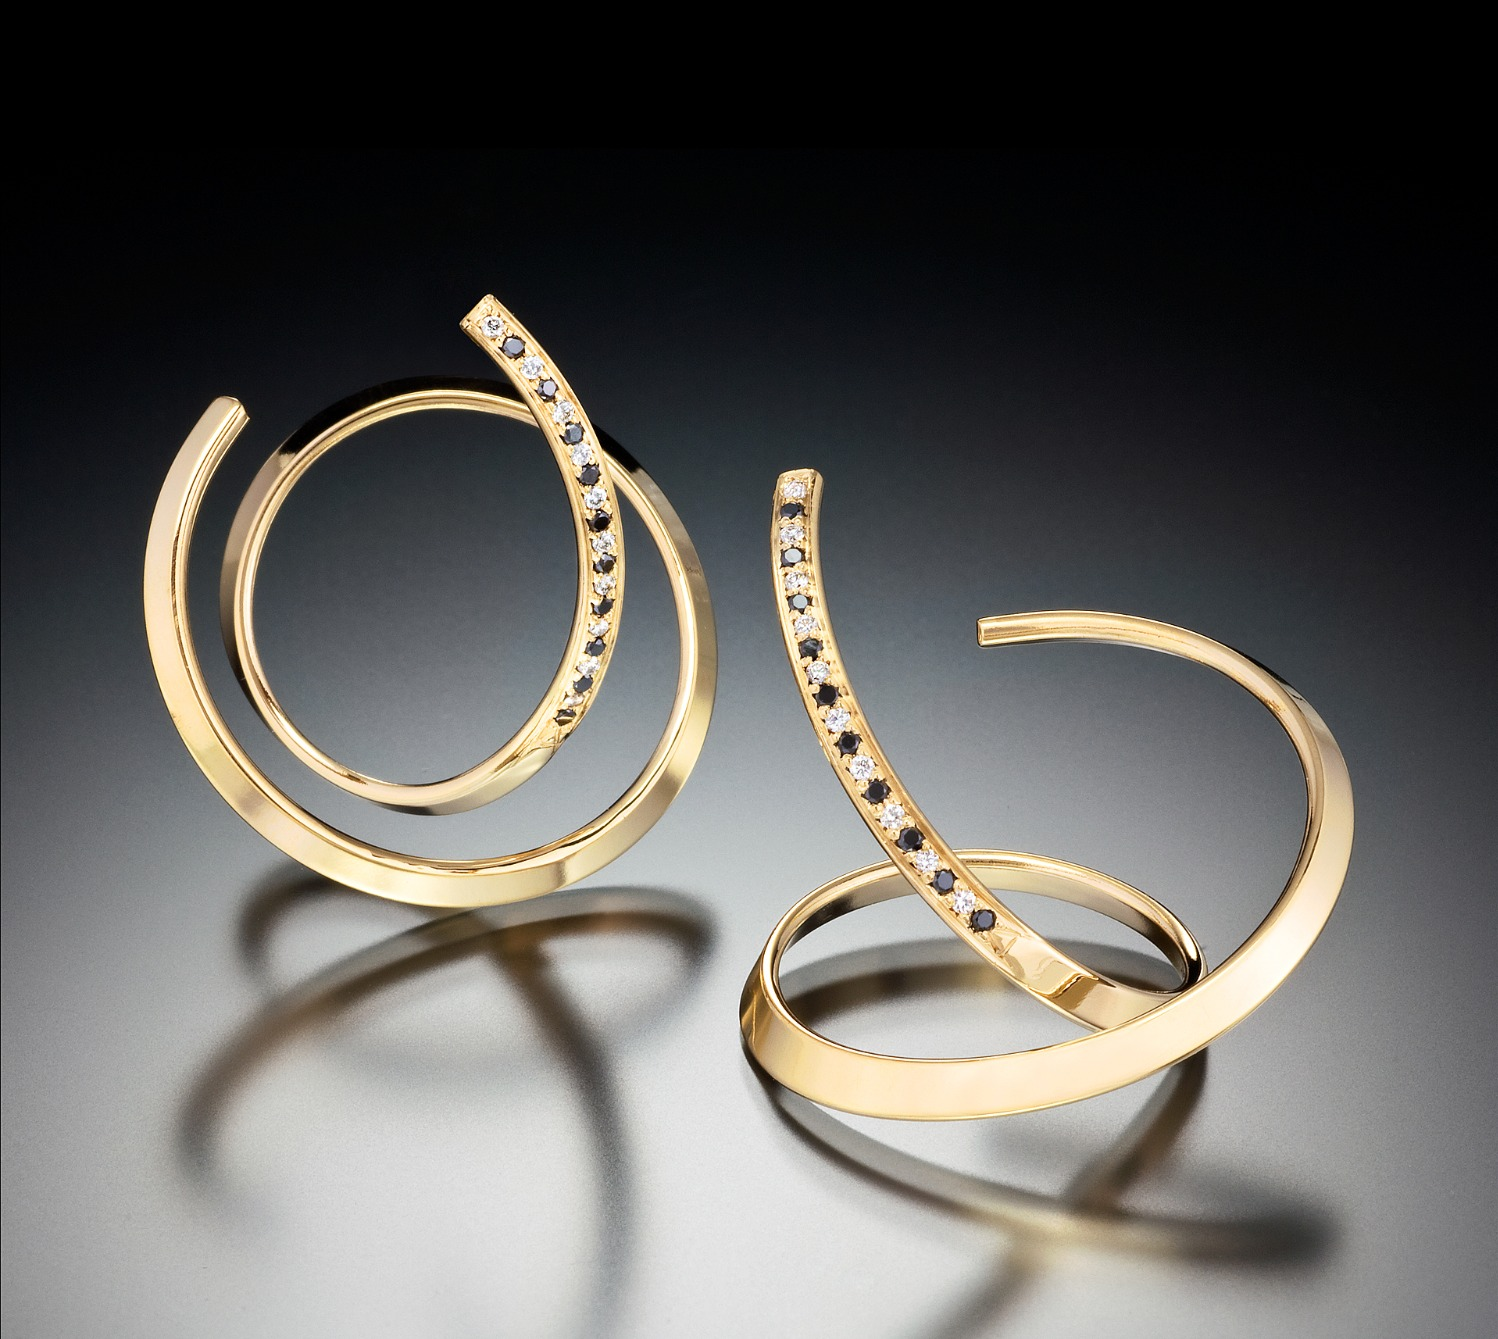 Robert Nilsson, Jewelry